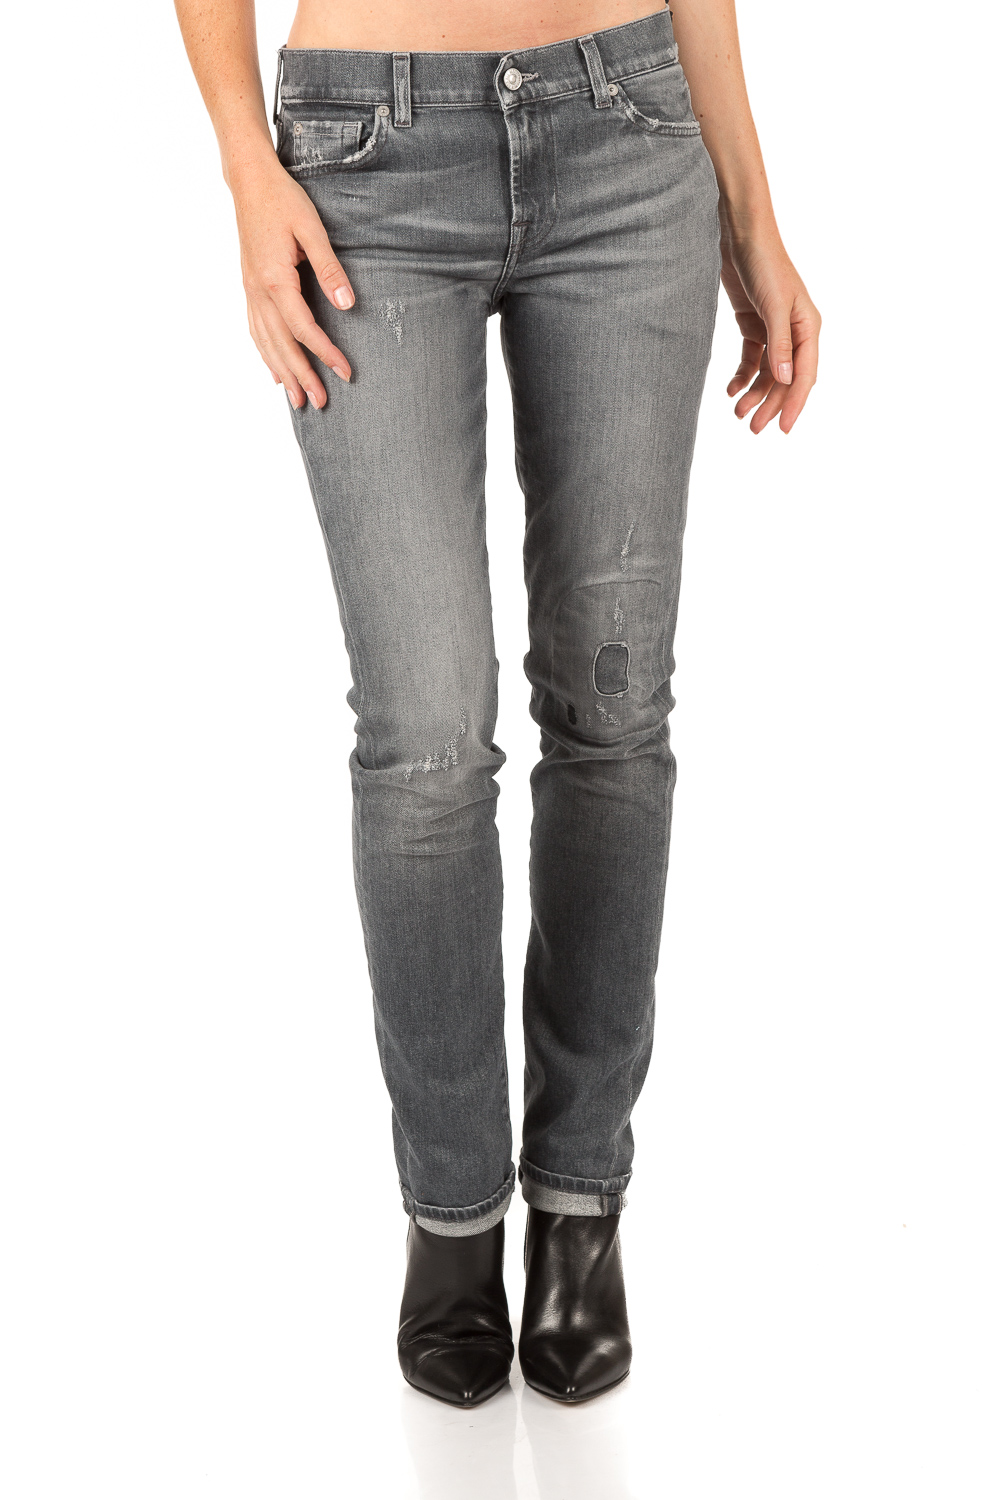 7 for all mankind roxanne review